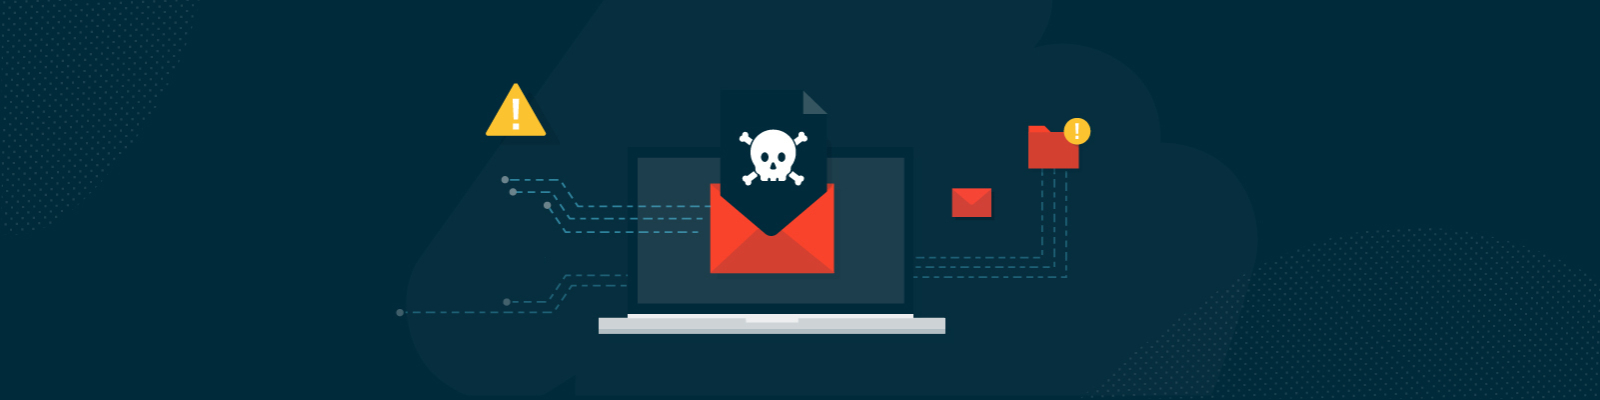 How to Detect Phishing Emails